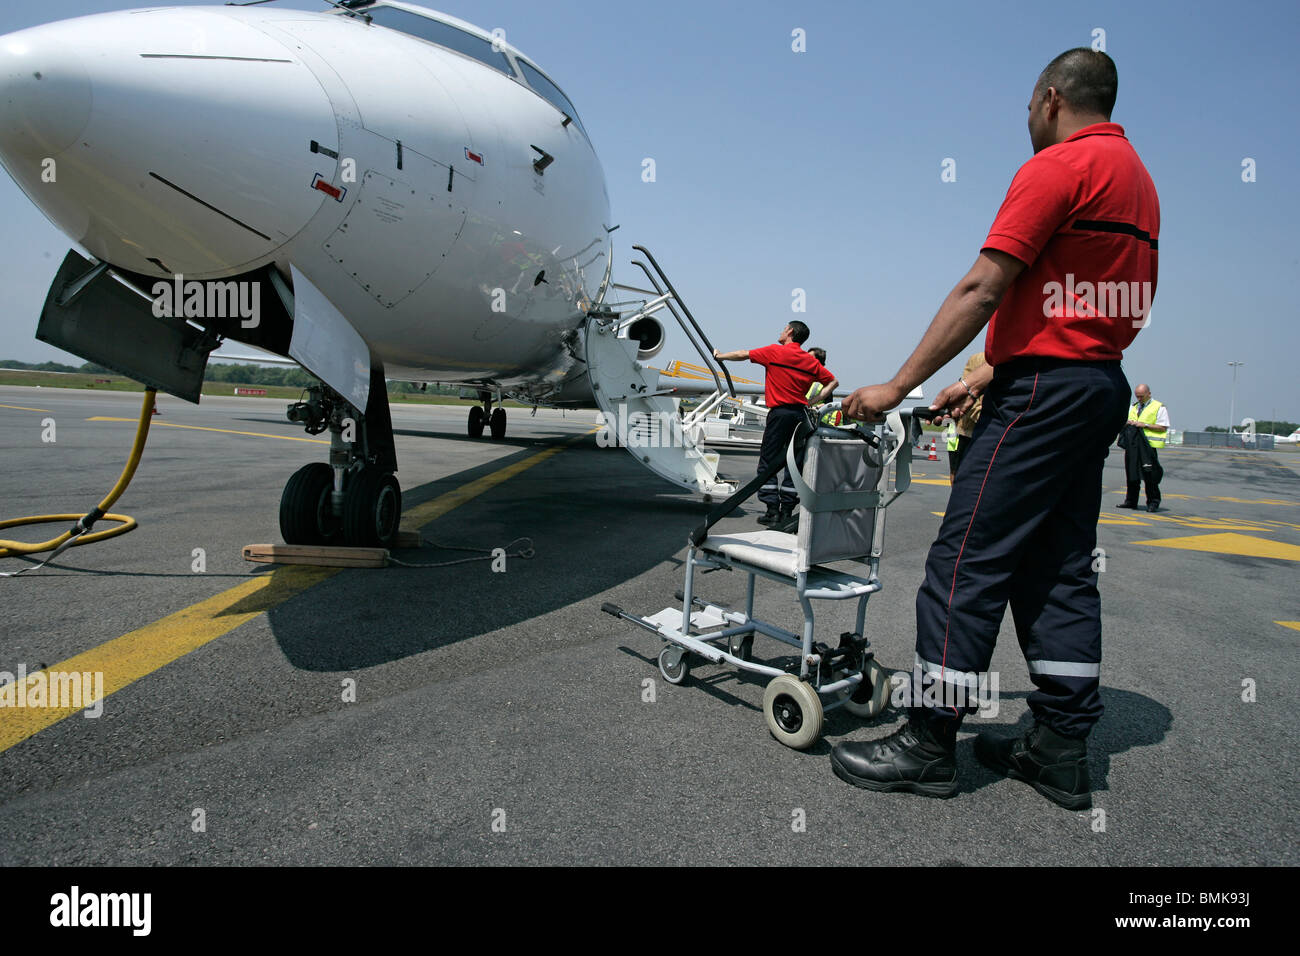 Disabled persons disembarking - Stock Image